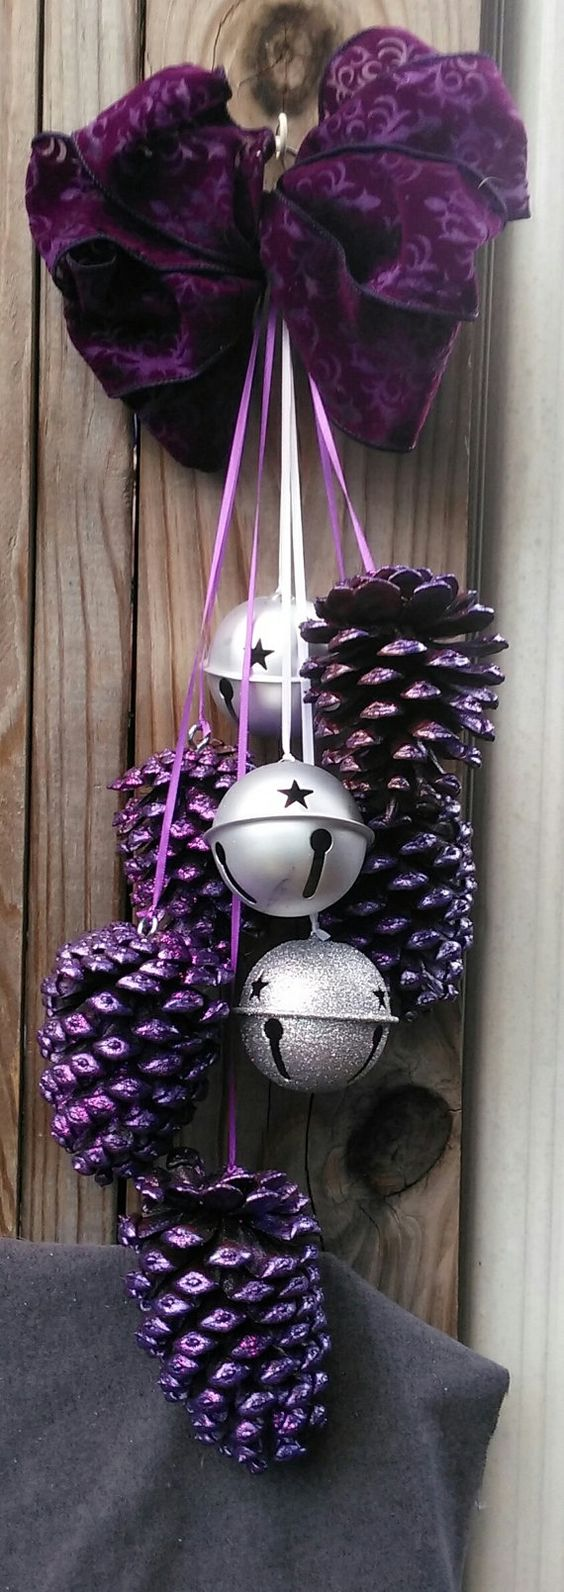 Glitter Purple Pinecones With Swag #Christmasdecor #purple #Christmas #decorhomeideas